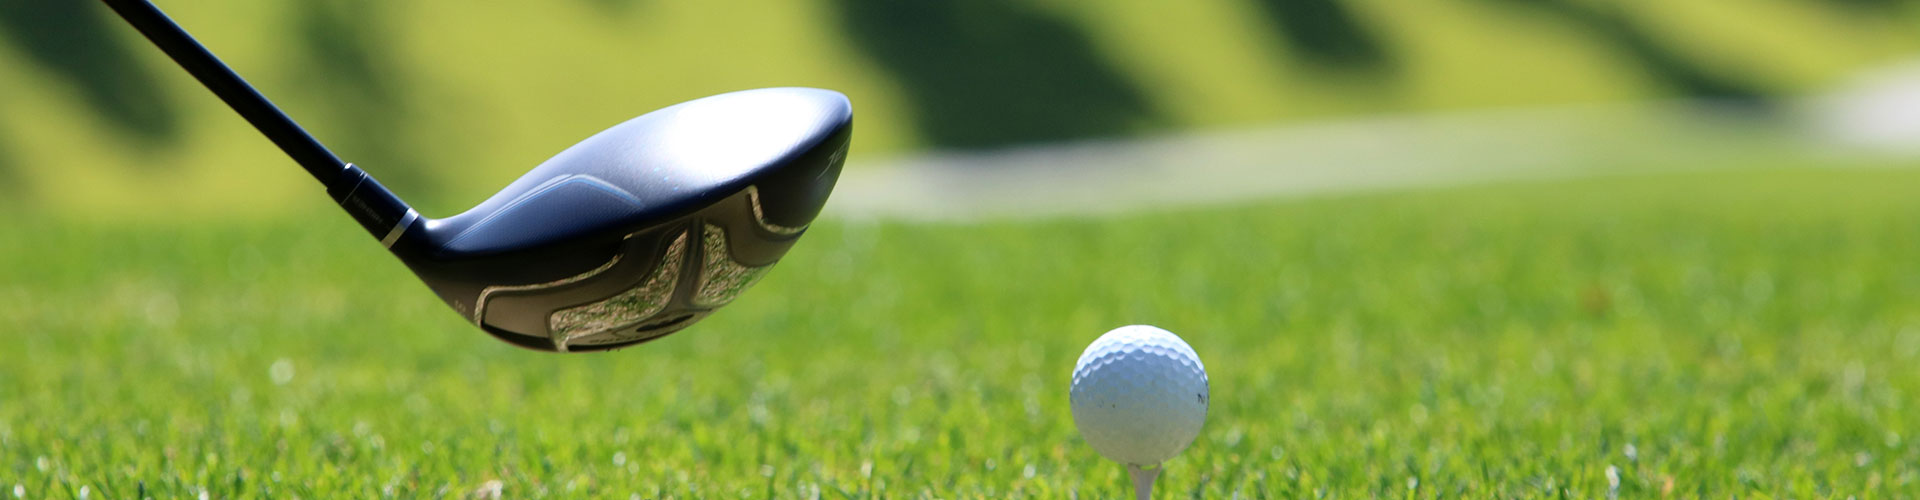 Golf in Italy, golfing italy, italian golf, golf courses in italy, italian golf clubs, golf holidays italy, golf tourism